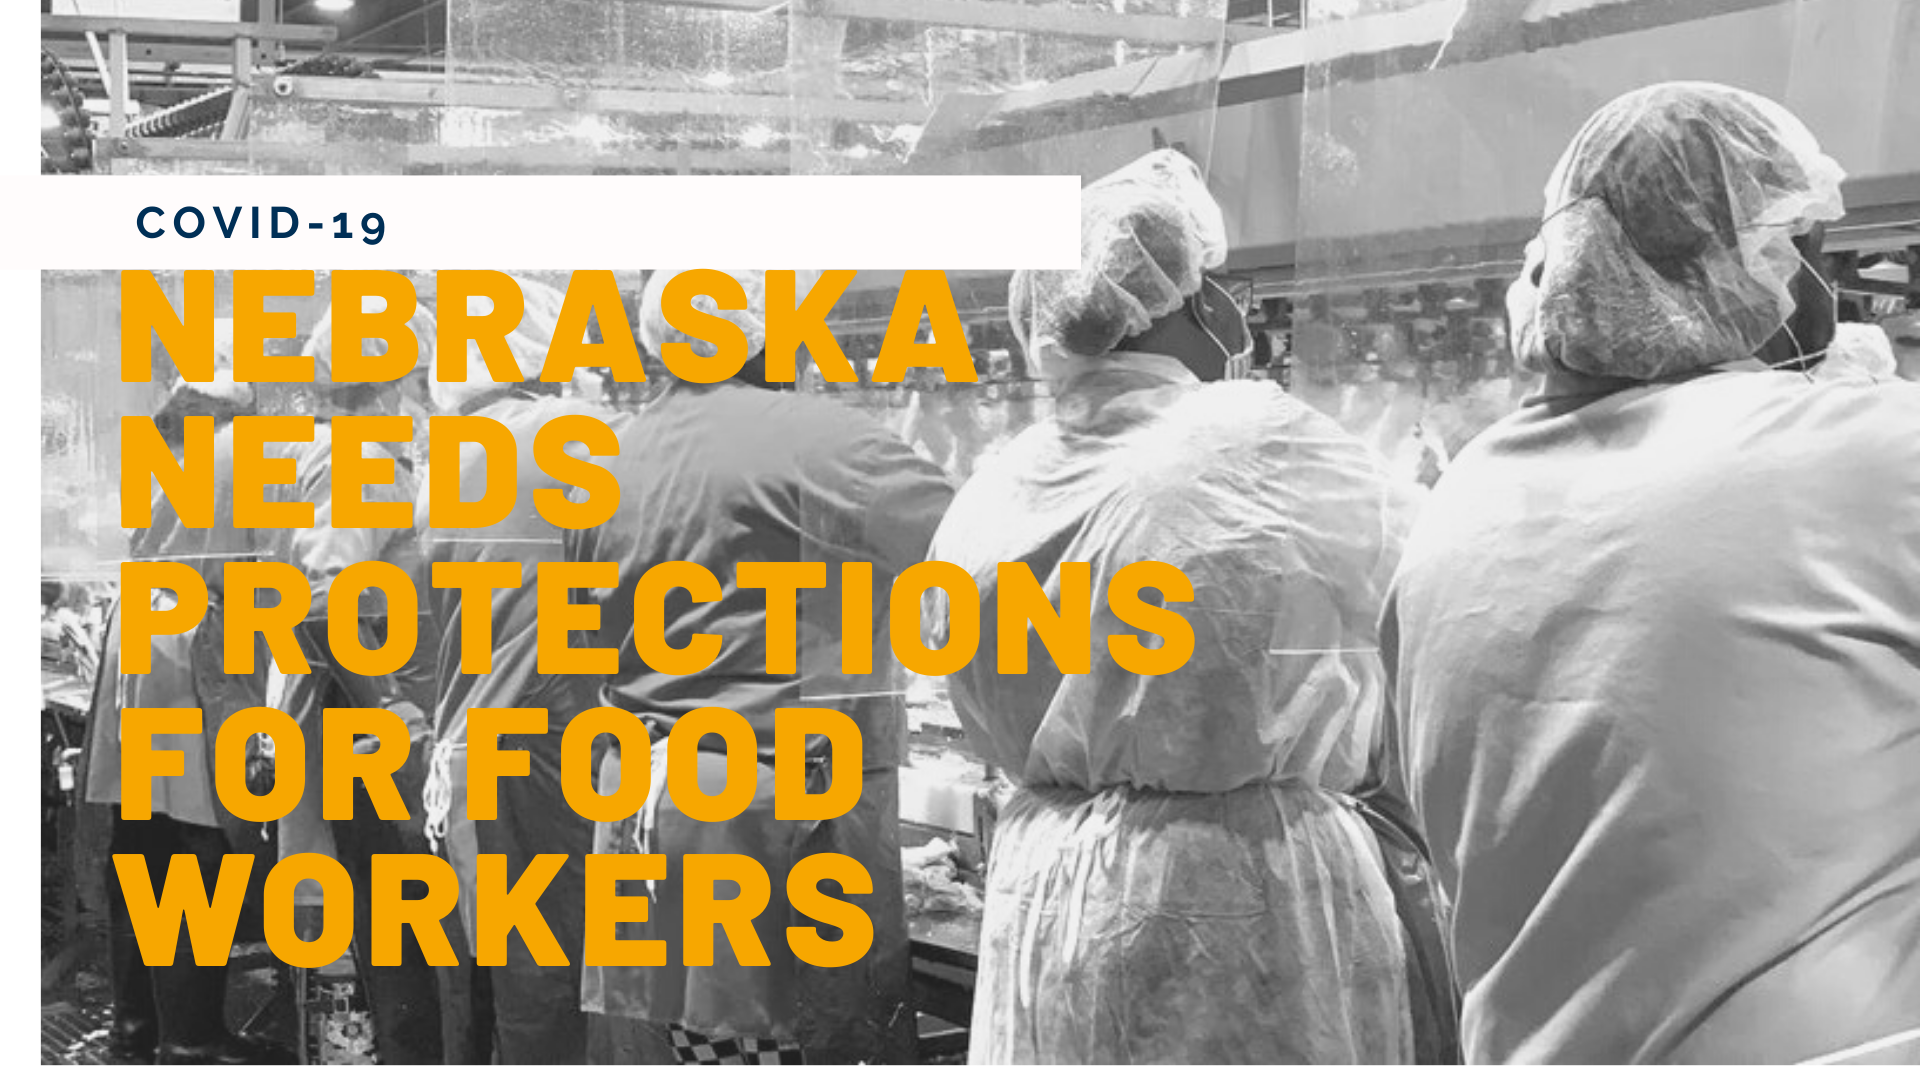 Take Action: Meatpacking Workers Need Essential Protections and Benefits